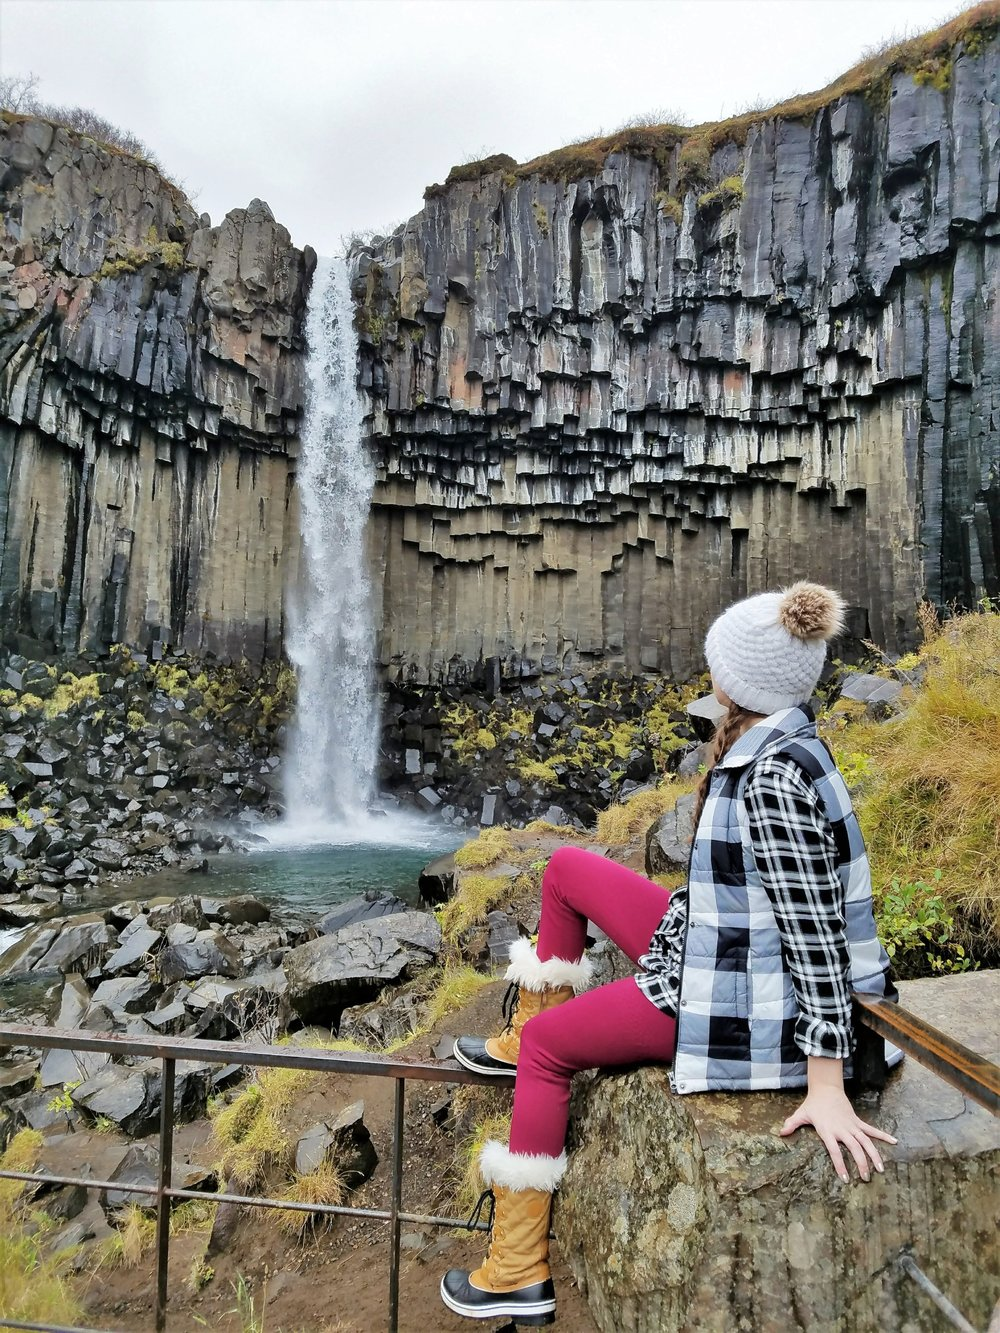 Svartifoss waterfall is a unique Iceland waterfall with basalt columns in a national park along the south coast. An easy hiking trail leads to this scenic view. Check out 7 of the prettiest waterfalls in Iceland here. #iceland #icelandtravel #europetravel #travel #traveldestinations #traveltips #waterfalls #icelandwaterfalls #svartifoss #beautifuldestinations